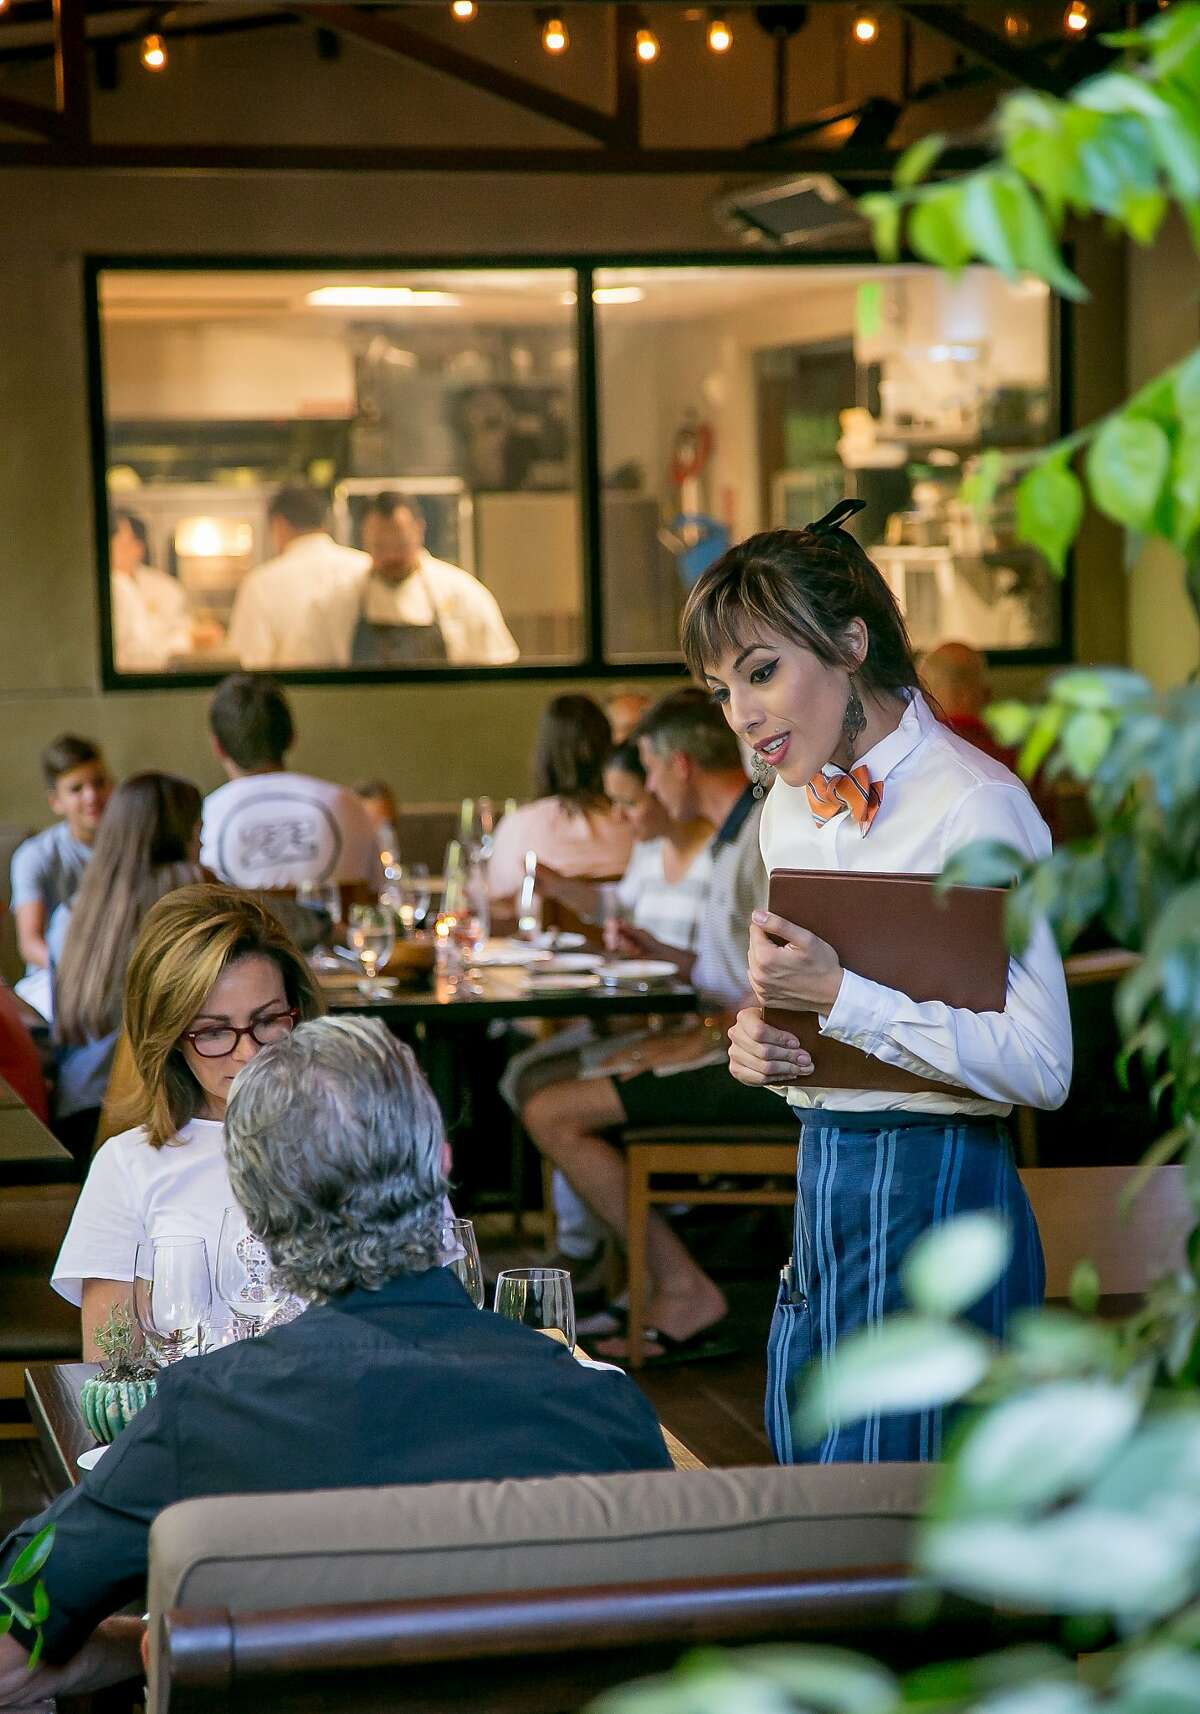 Server Alma Candelas talks with diners at Harvest Table in St. Helena, Calif., on July 26th, 2015.